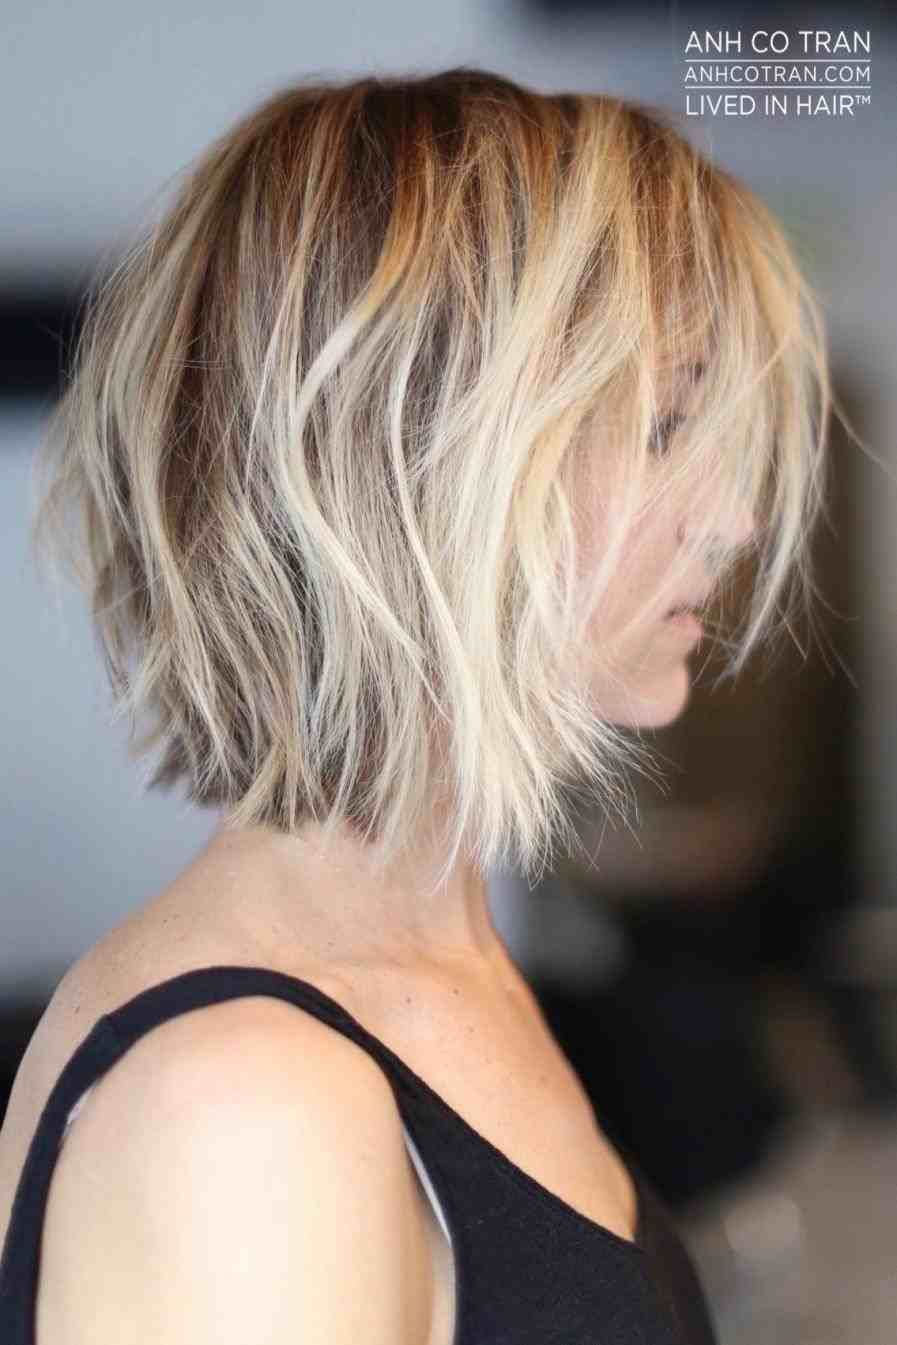 bob hairstyle beauty pinterest hairstyles pin by jeanette paz on